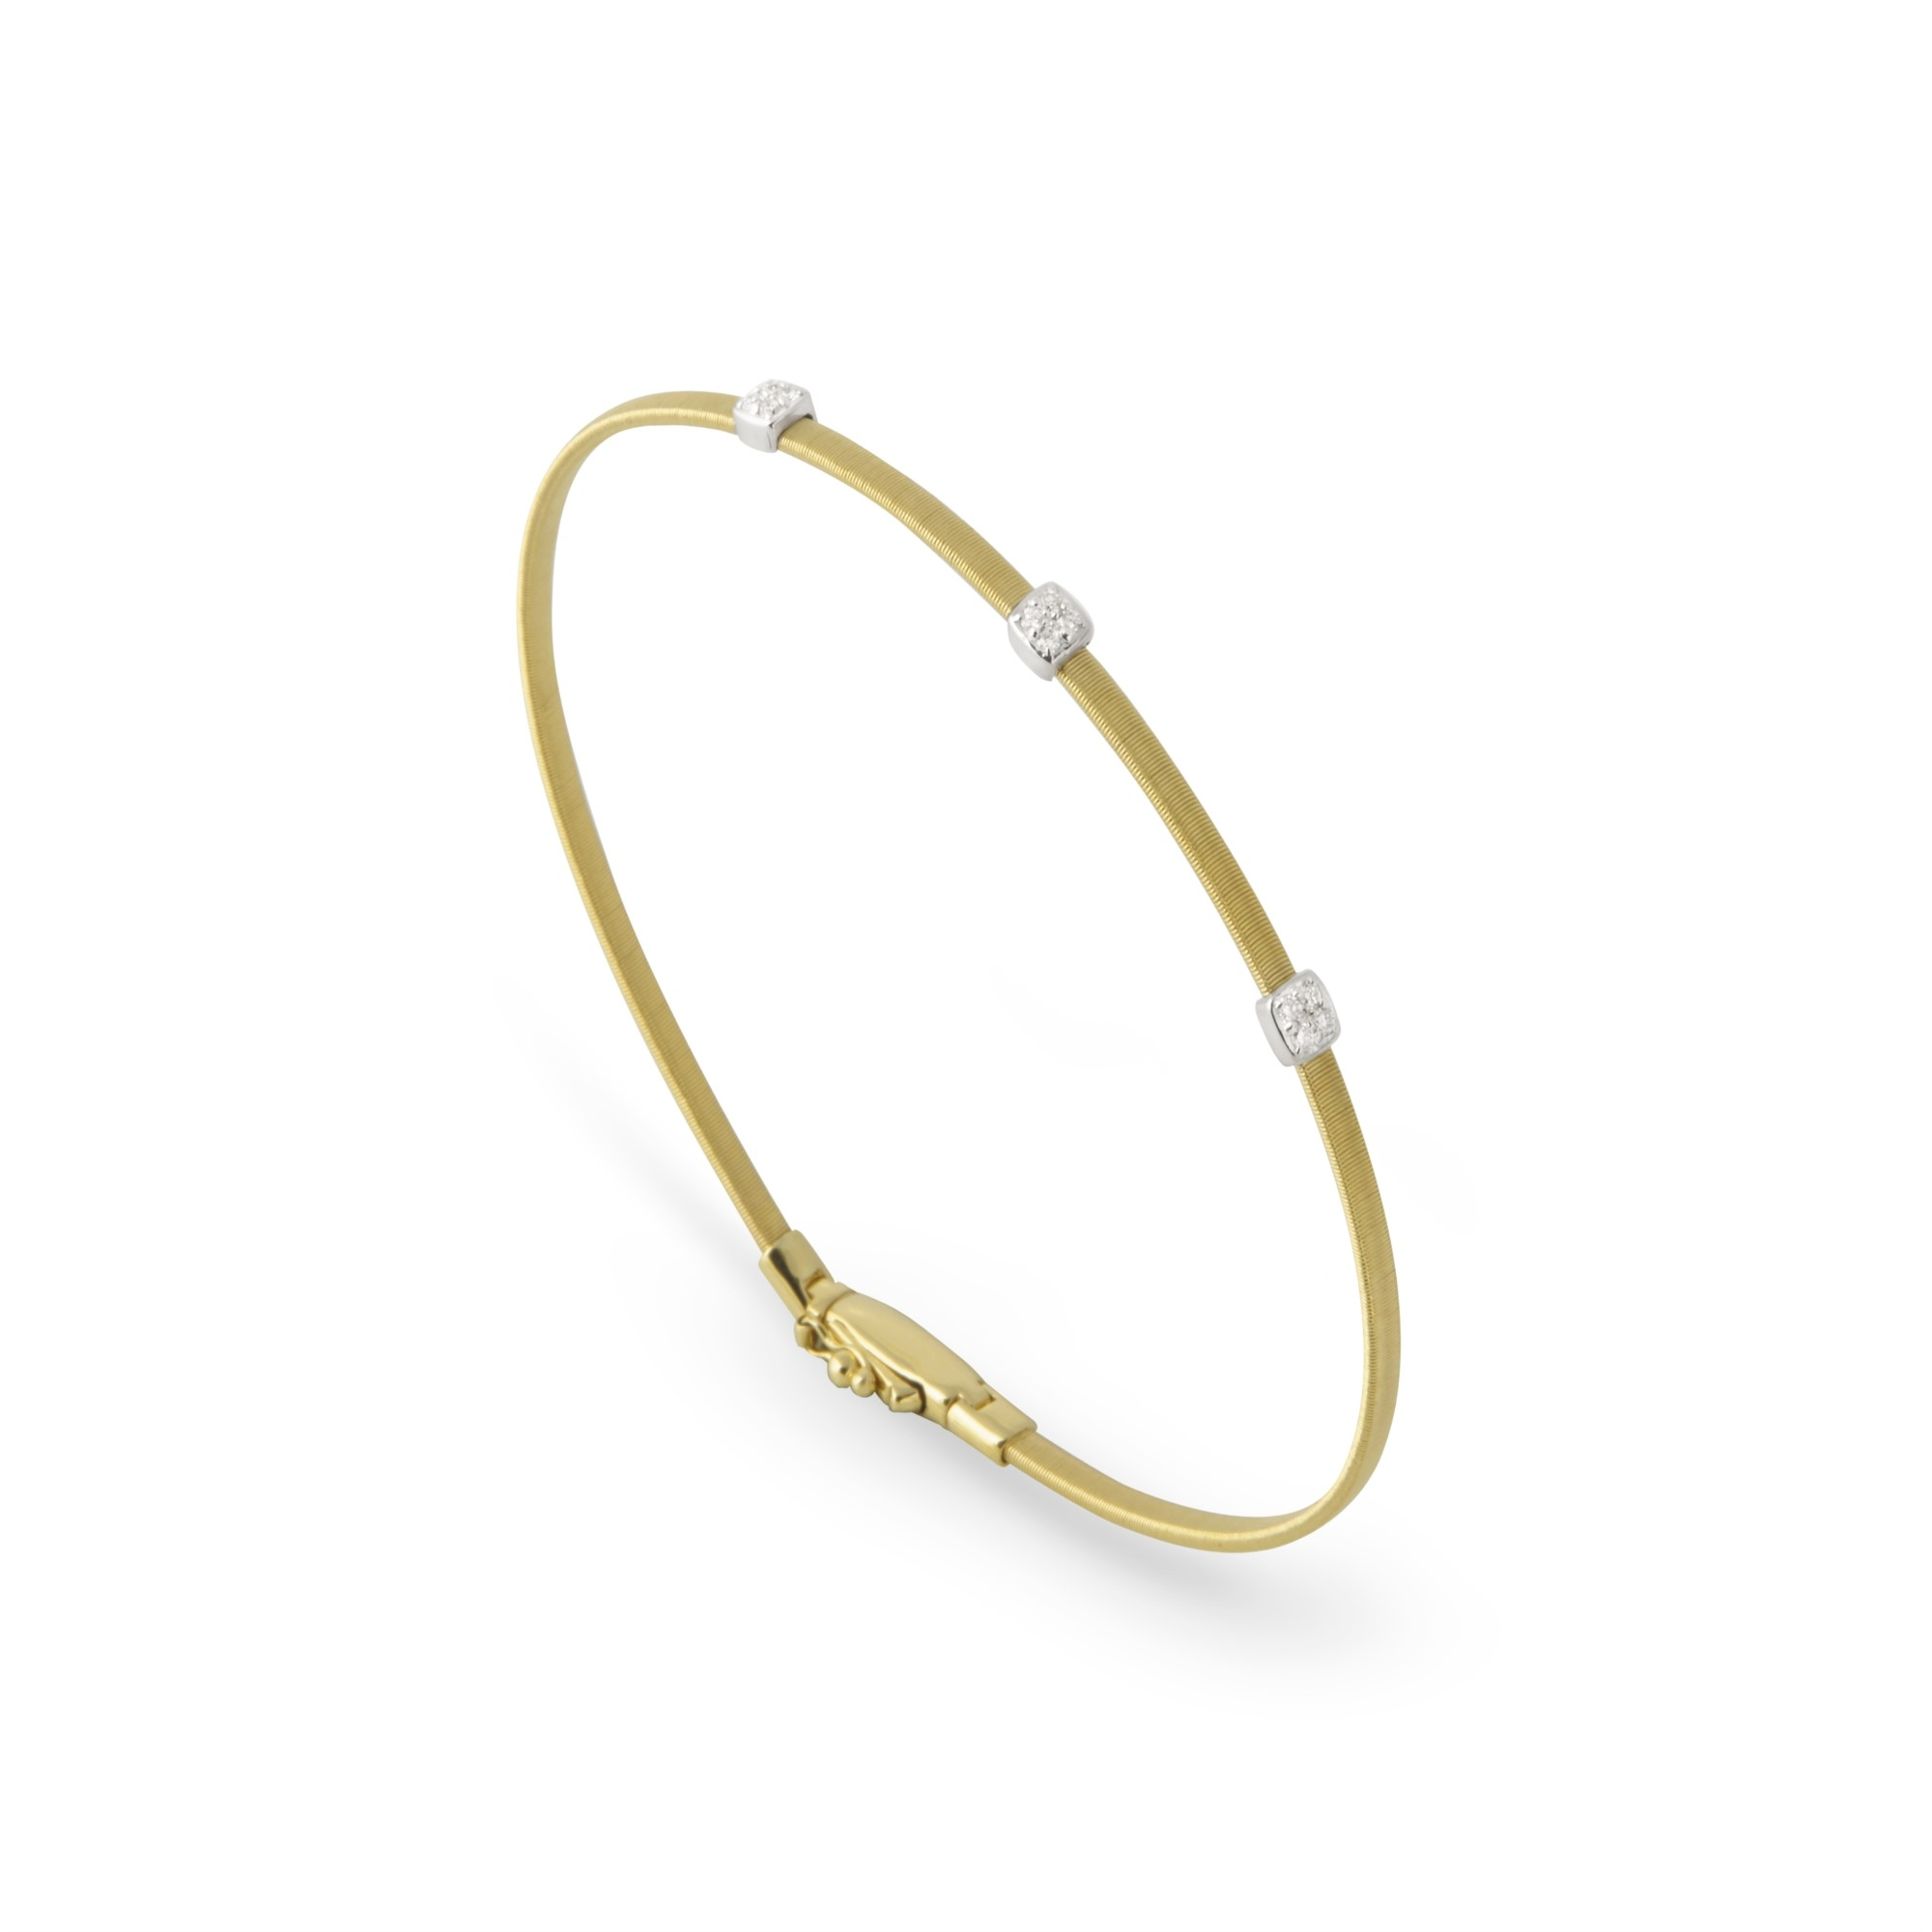 Marco Bicego 18K Yellow and White Gold .09cts  Diamonds Gold Bangle with Stones BG730-B1 YW